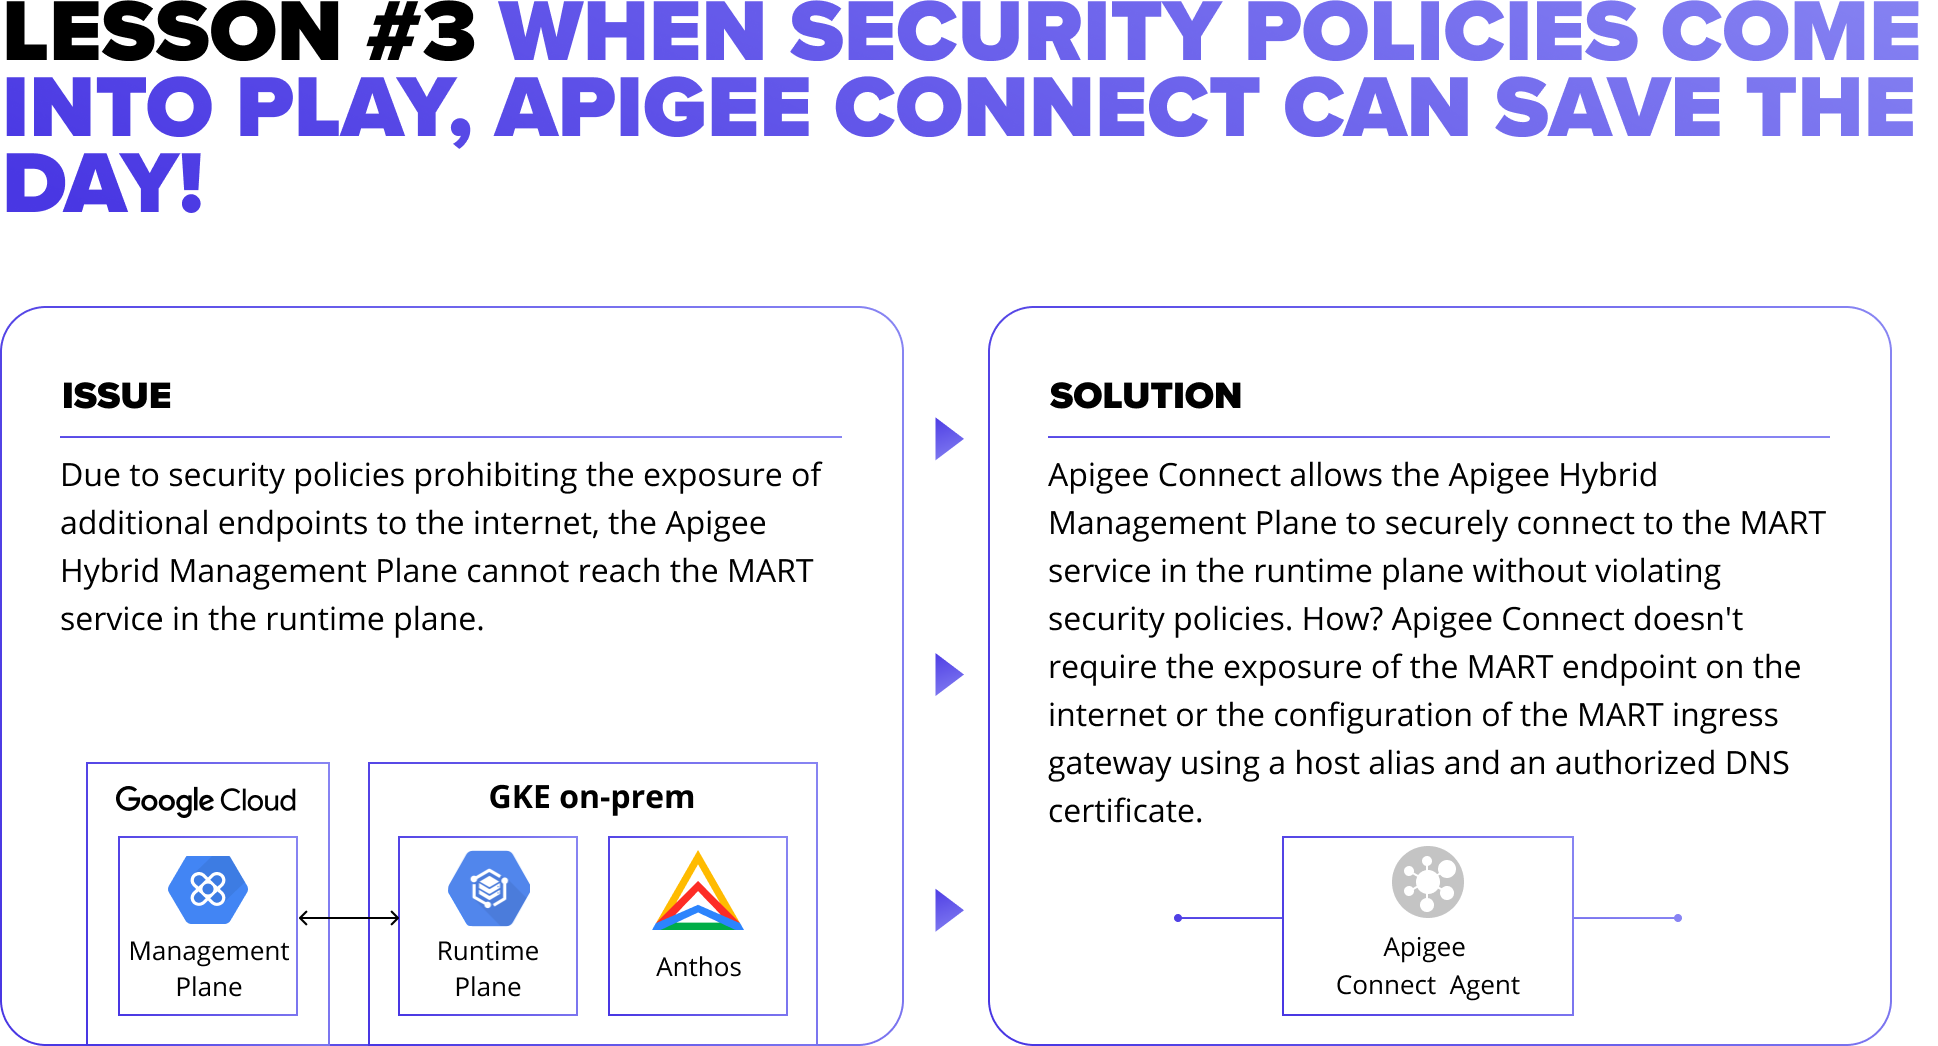 LESSON #3: WHEN SECURITY POLICIES COME INTO PLAY, APIGEE CONNECT CAN SAVE THE DAY!